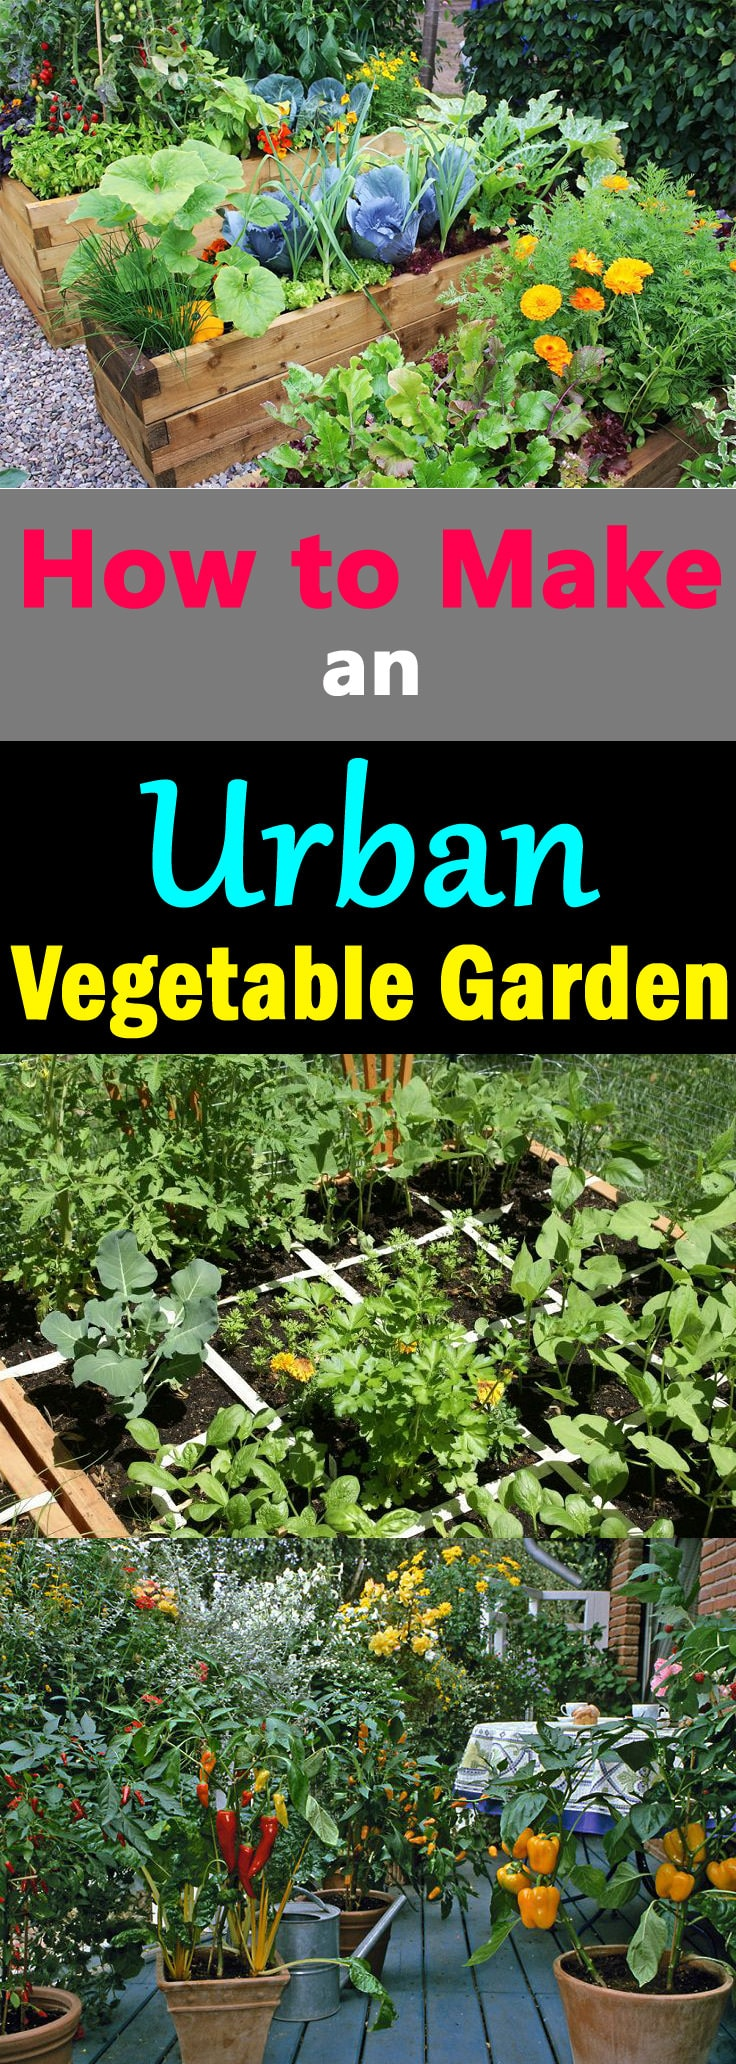 Want to know how to make an Urban Vegetable Garden? This article will help you in creating a functional and productive city vegetable garden.